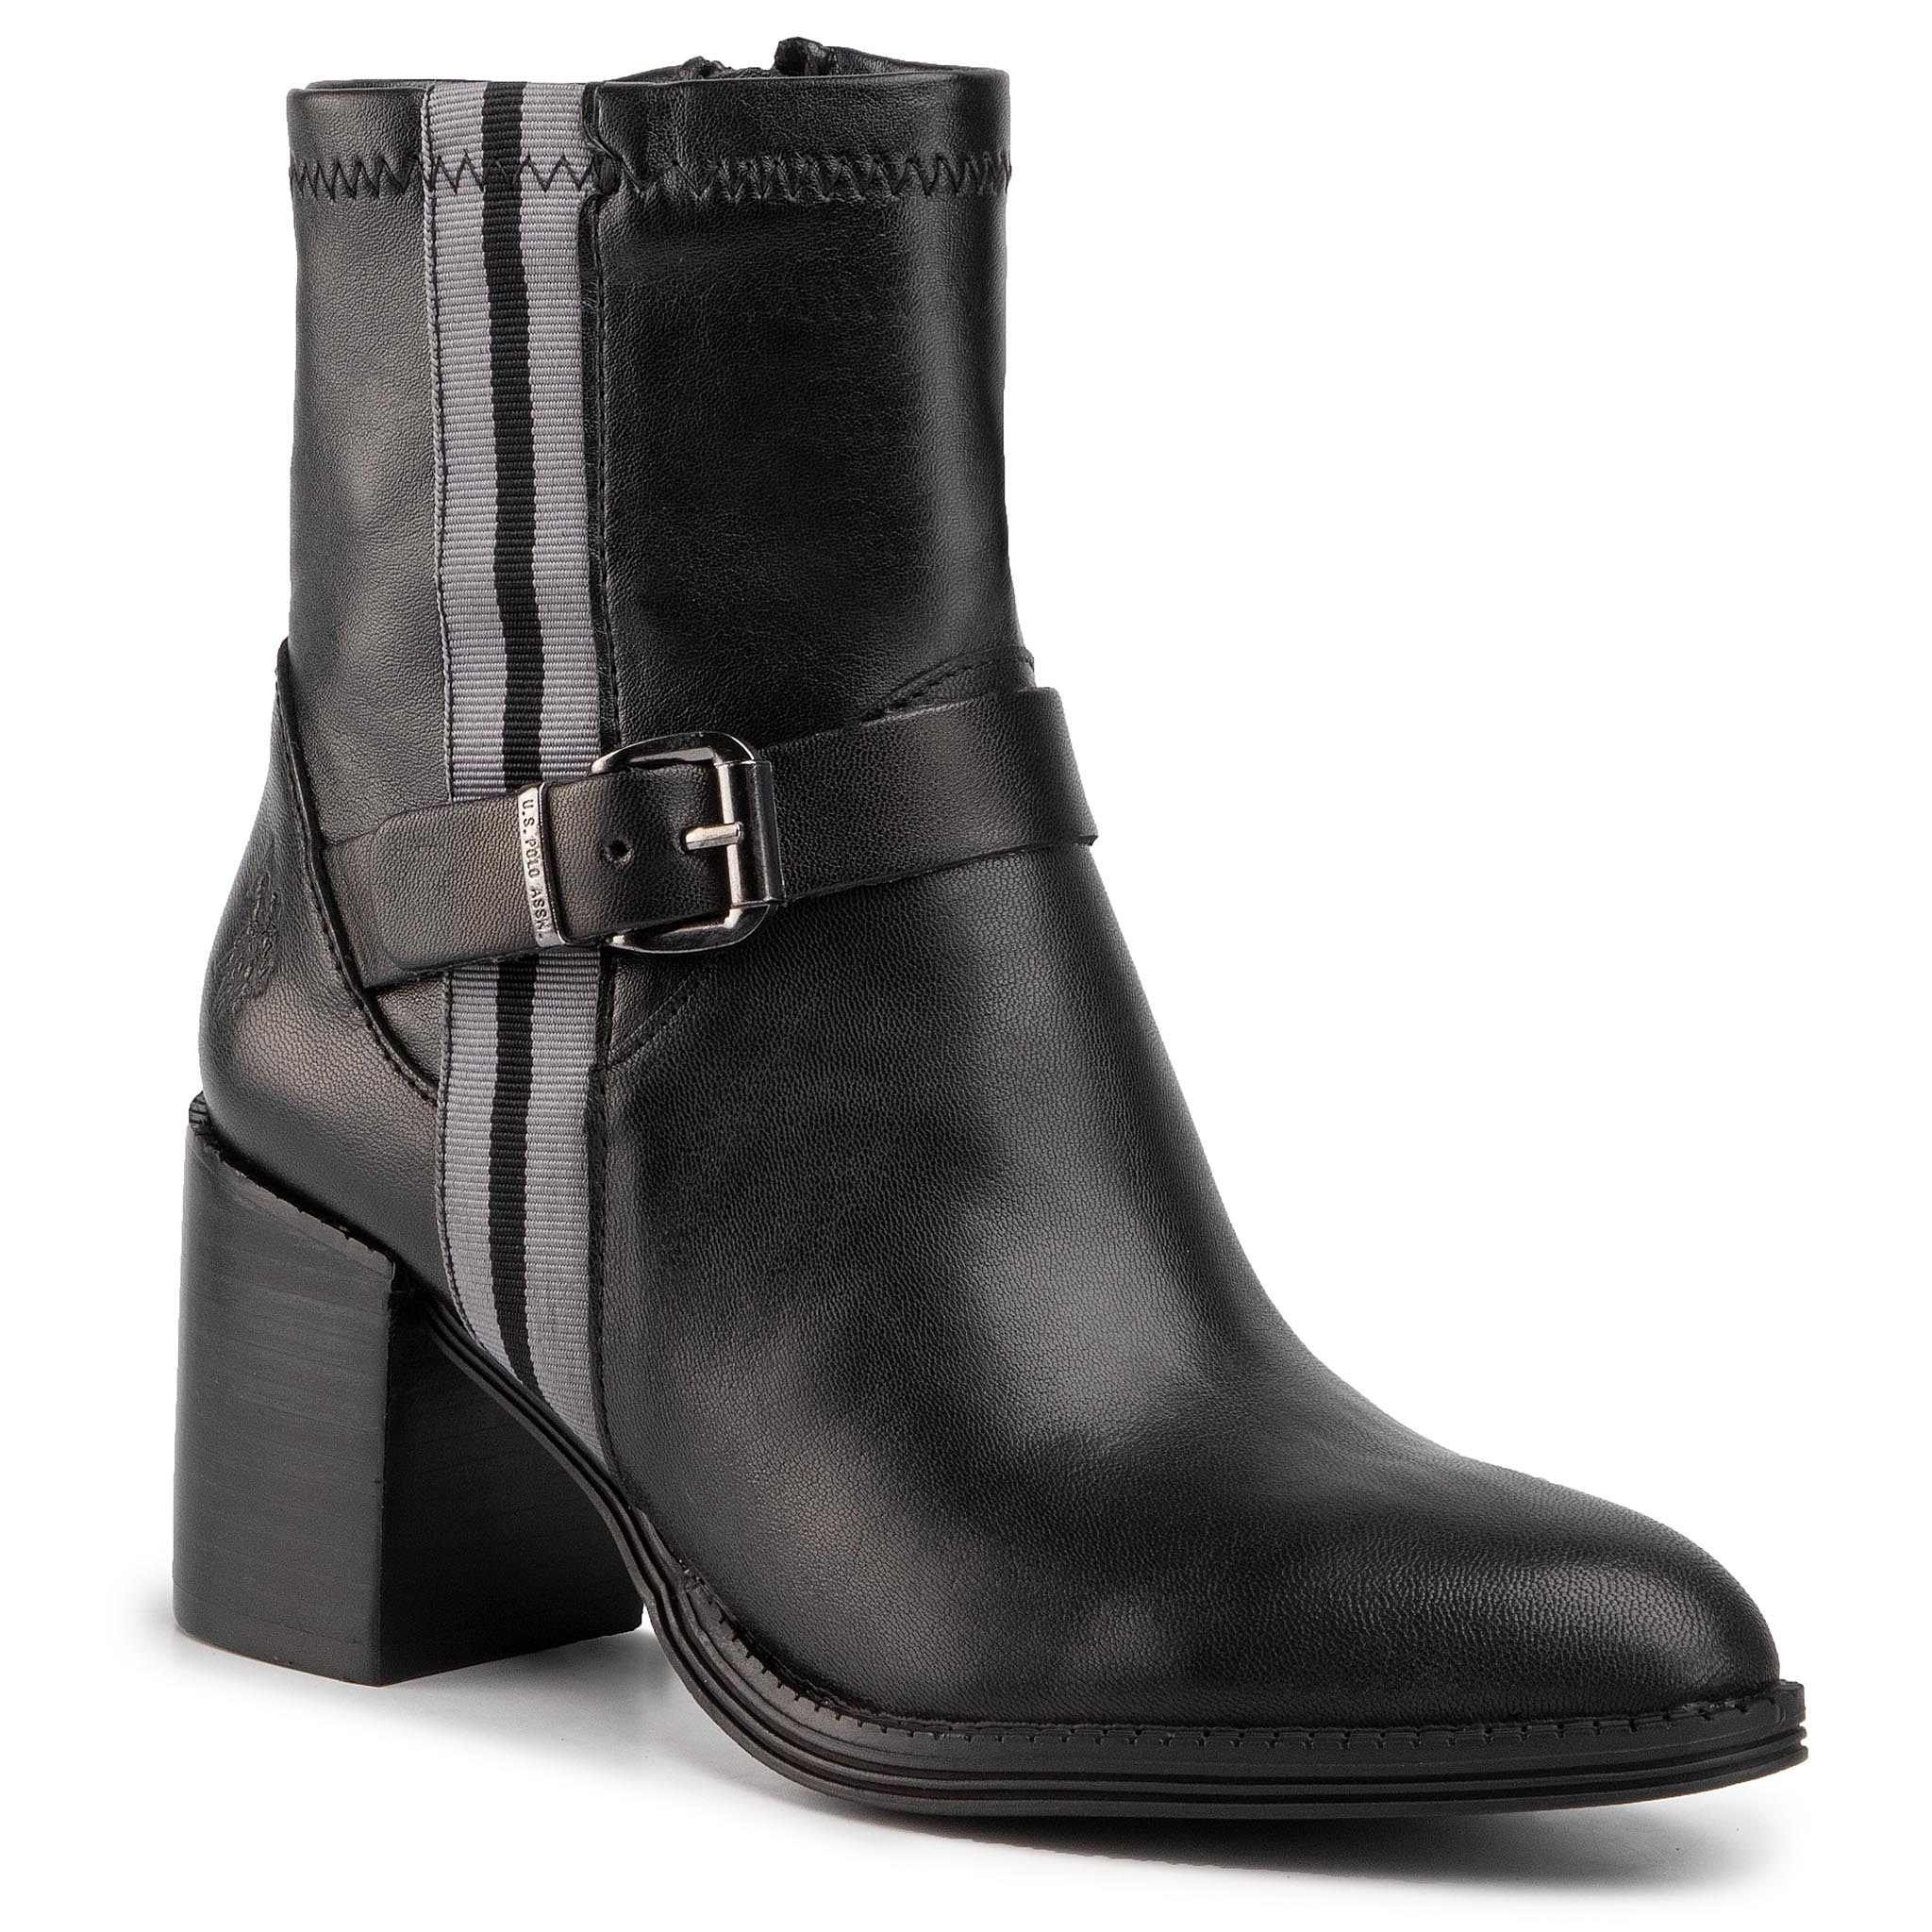 Bottines U.S. POLO ASSN. - Agnes UDIT4069W9/L1 Blk